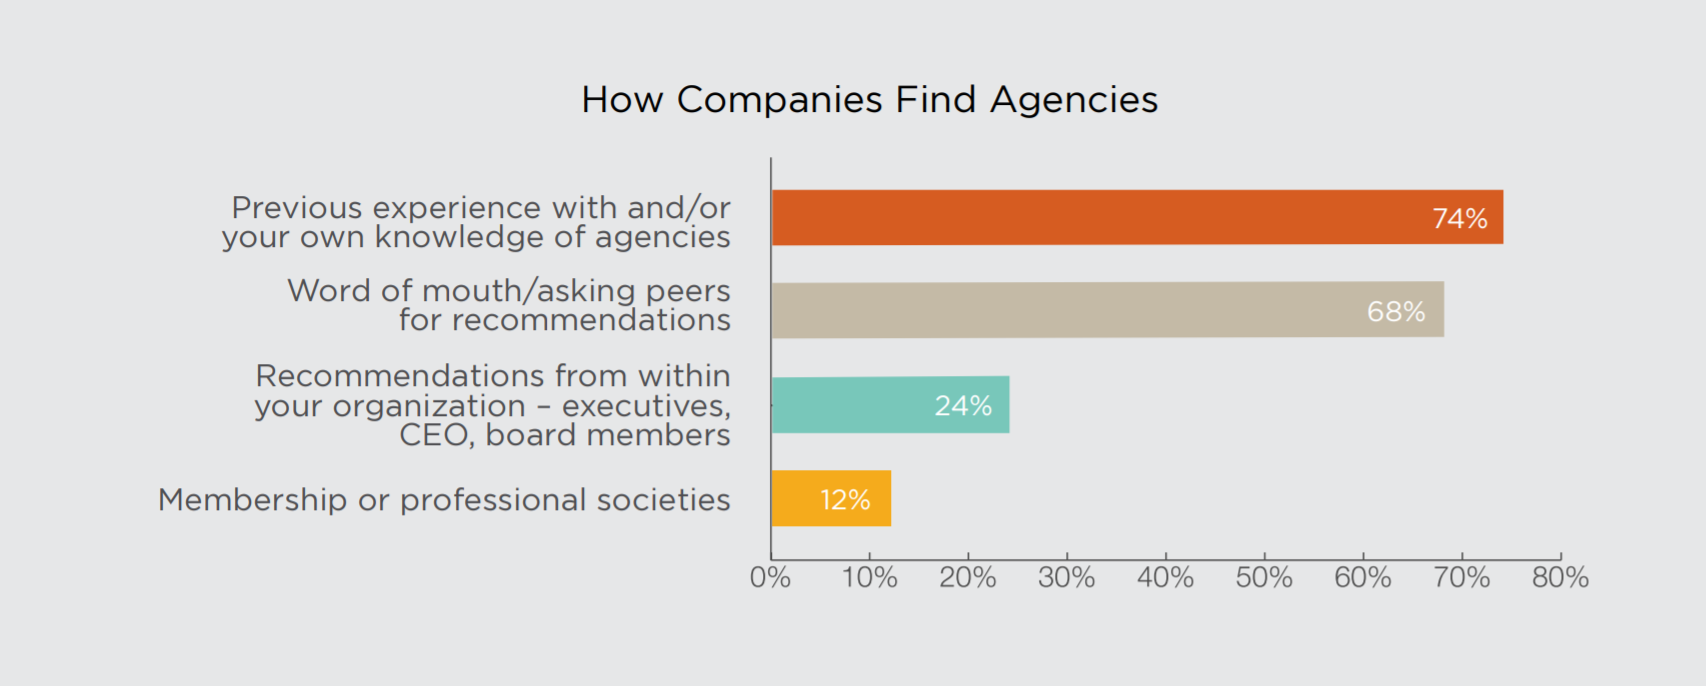 How do companies find agencies?